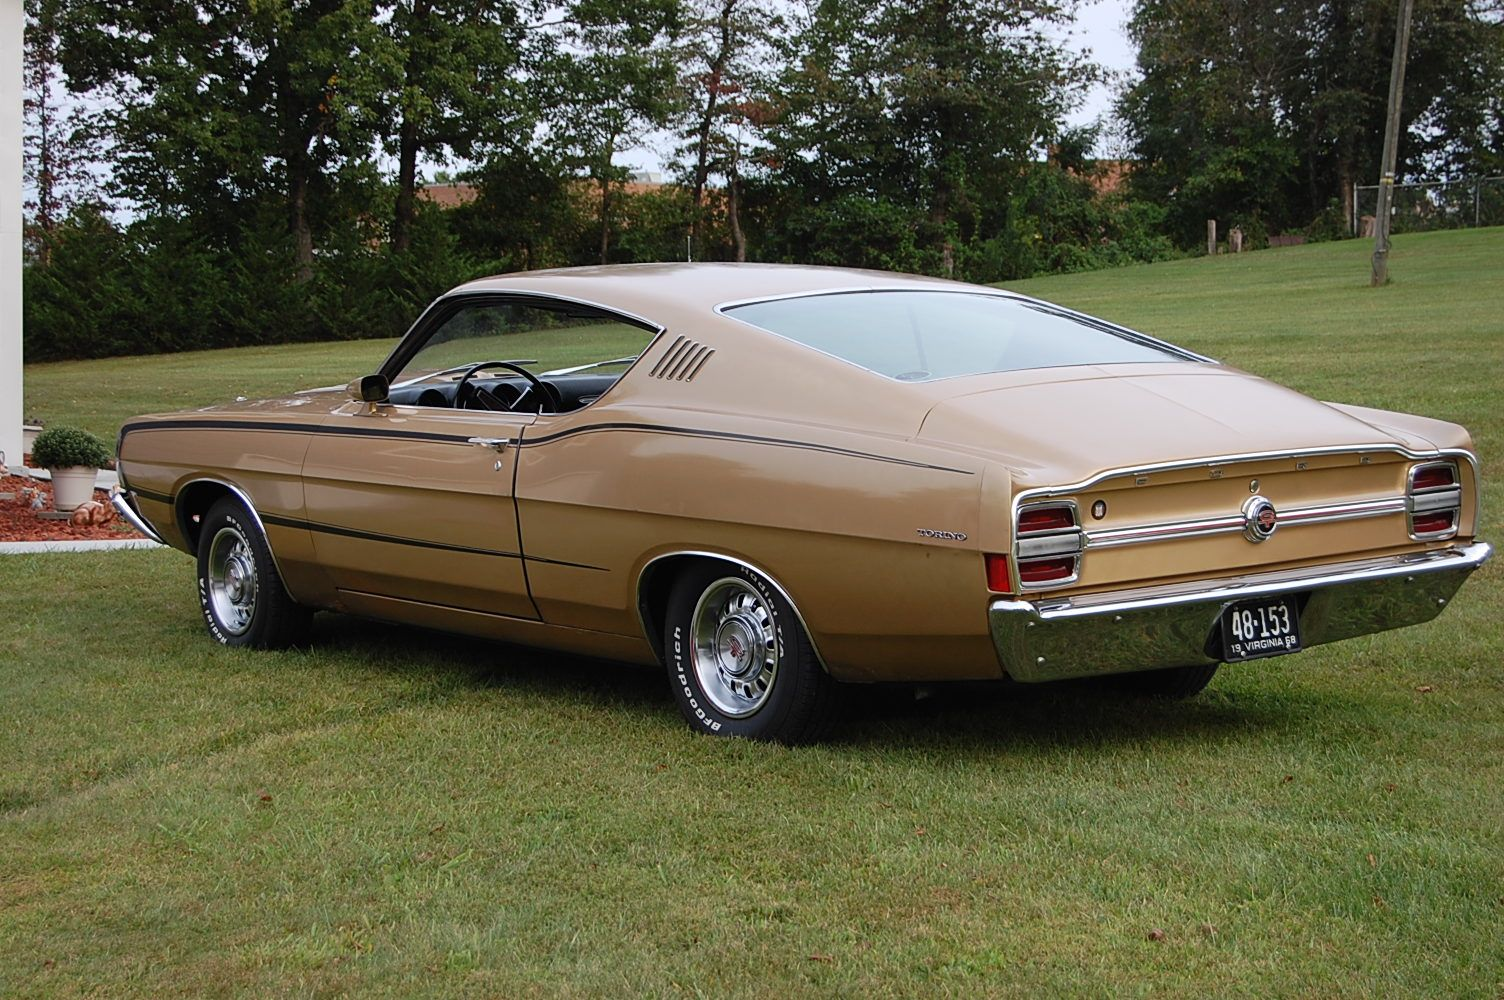 1972 mercury montego n code 429 restomod motorcycle custom - 1969 Grand Torino Gt Fastback Dream Cars Pinterest Grand Torino Ford Torino And Ford